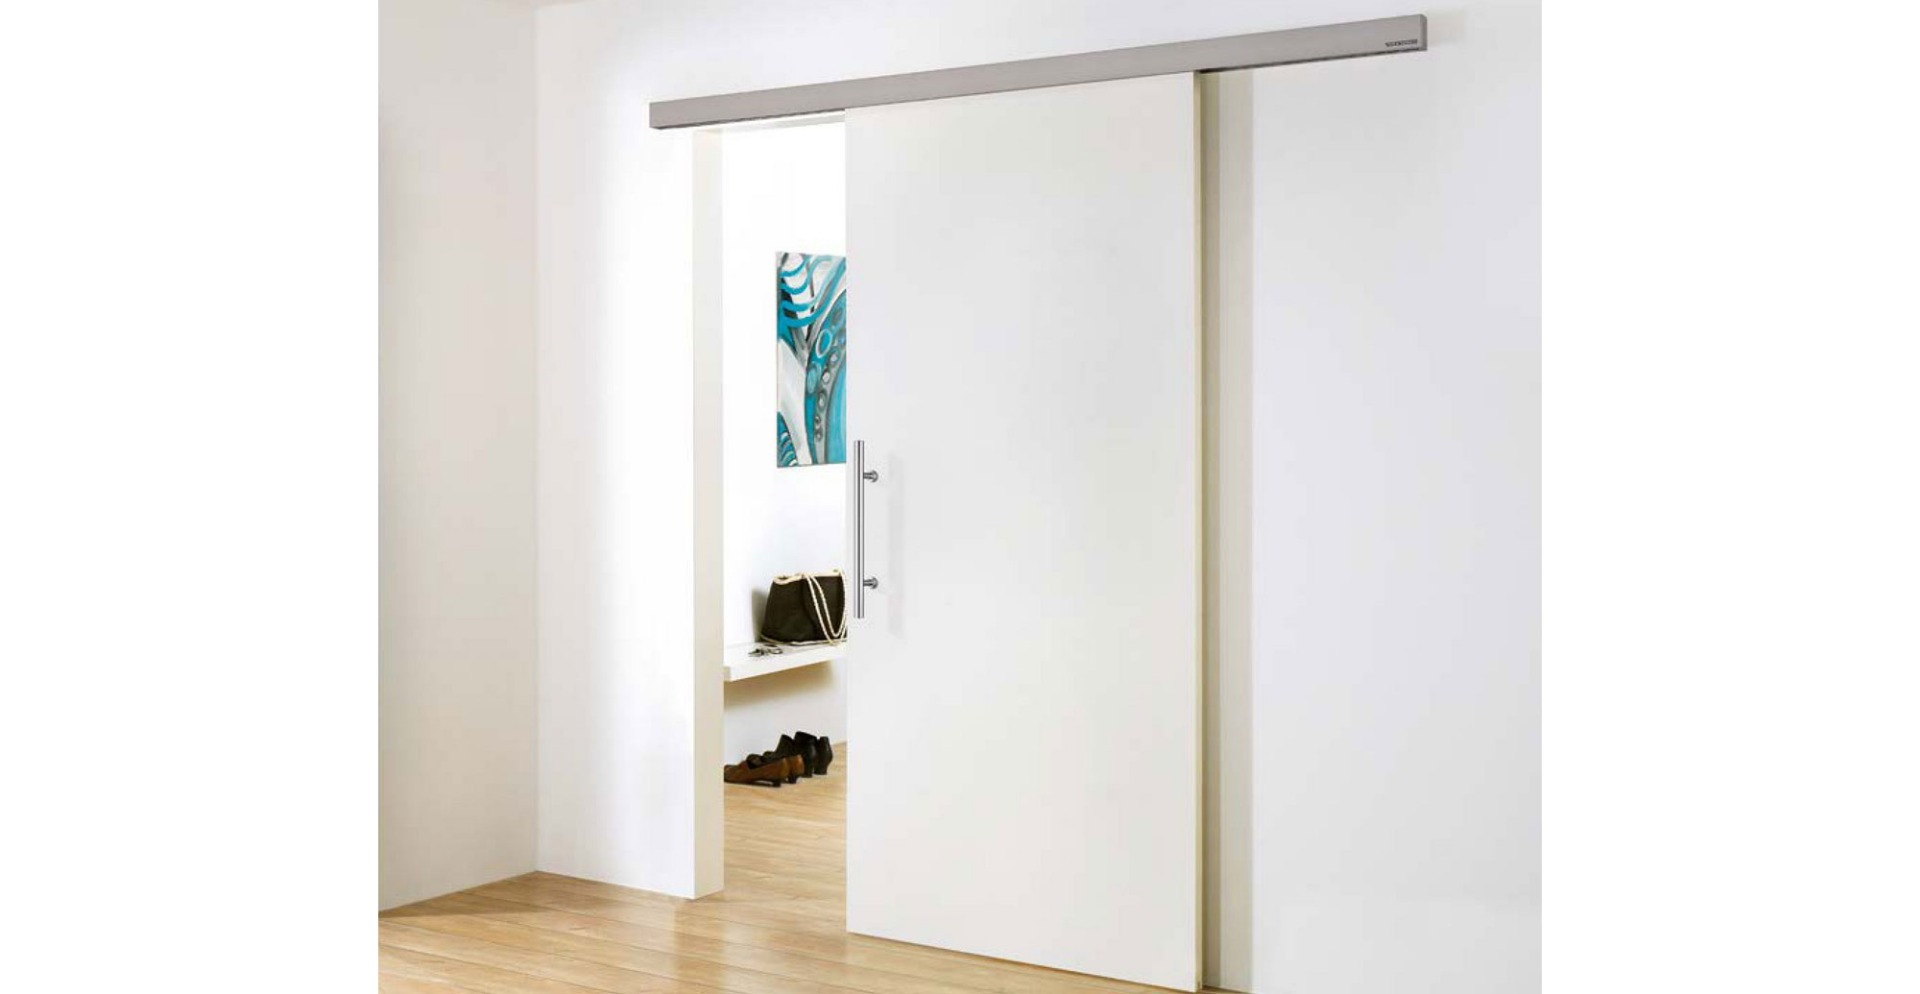 White doors bespoke wooden sliding doors white internal door bespoke wooden sliding doors planetlyrics Gallery